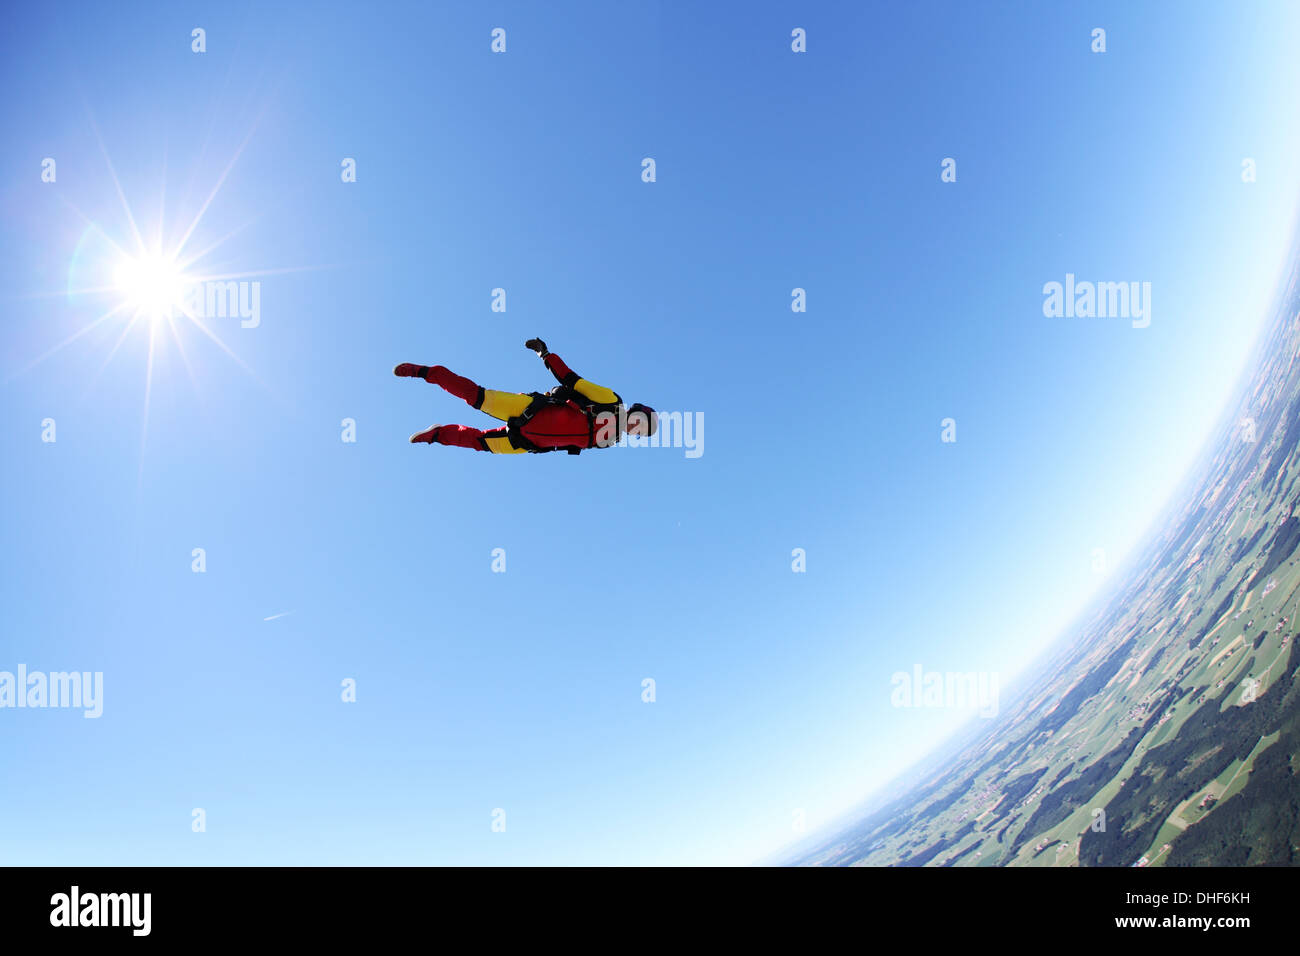 Skydiver free falling face vers le bas au-dessus de Leutkirch, Bavaria, Germany Photo Stock